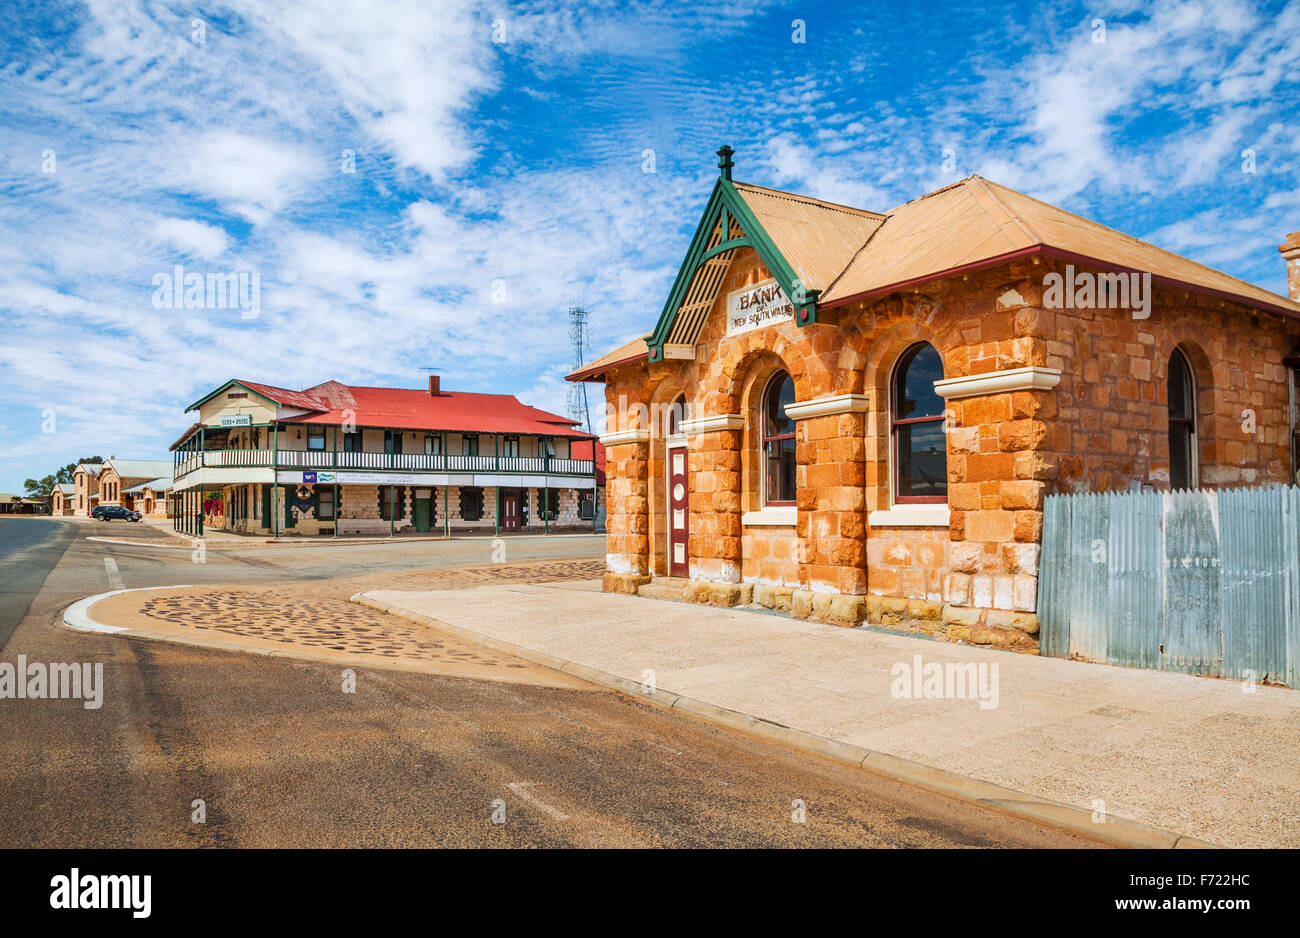 Australia, Western Australia, Mid West, Murchison Region, gold rush town of Cue, view of the former Bank of New - Stock Image